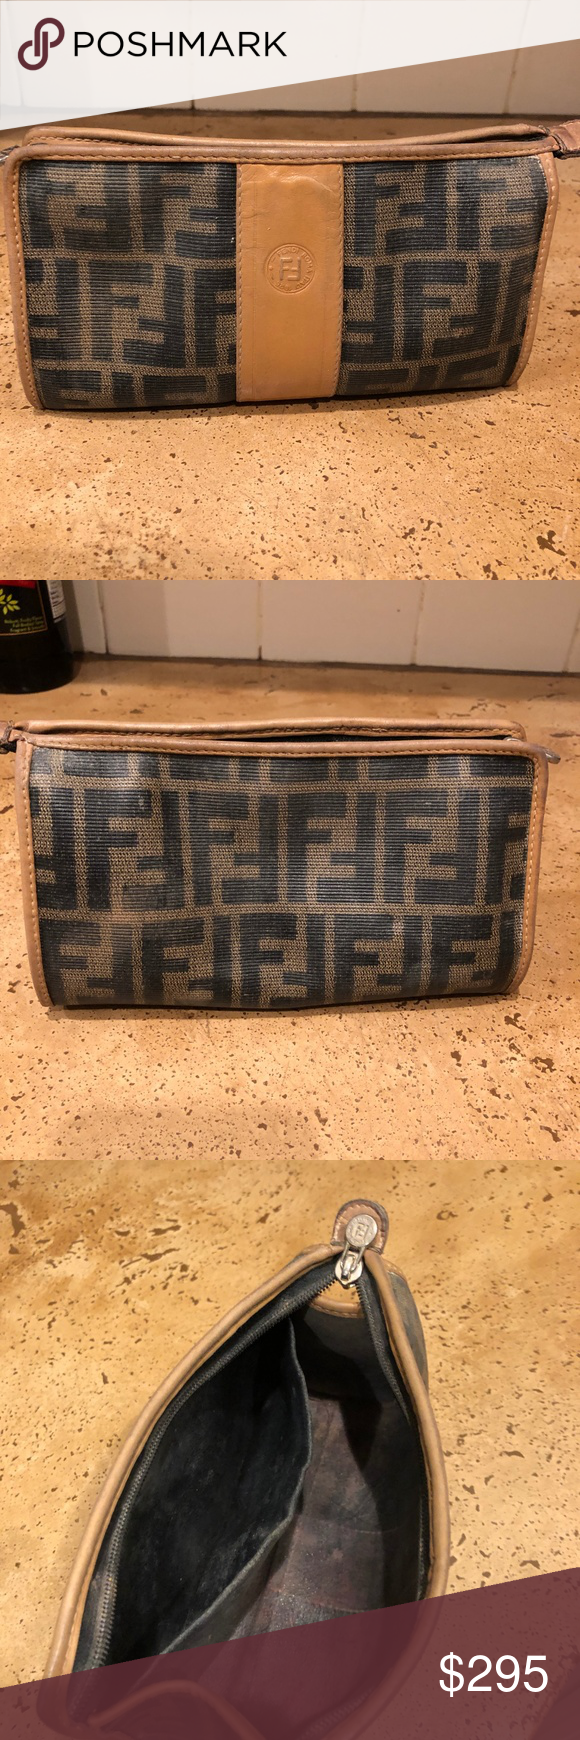 Genuine Fendi make up bag zip top This is Vintage Fendi